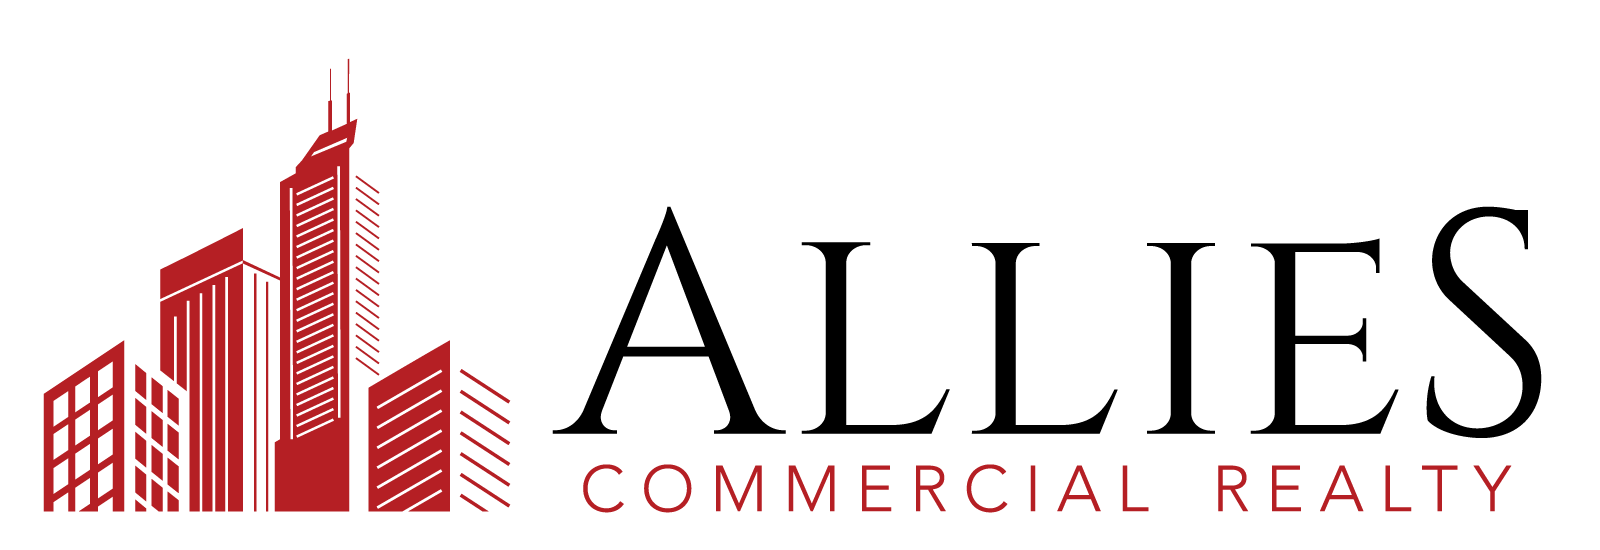 Allied-Commercial-Realty-Horizontal-Logo